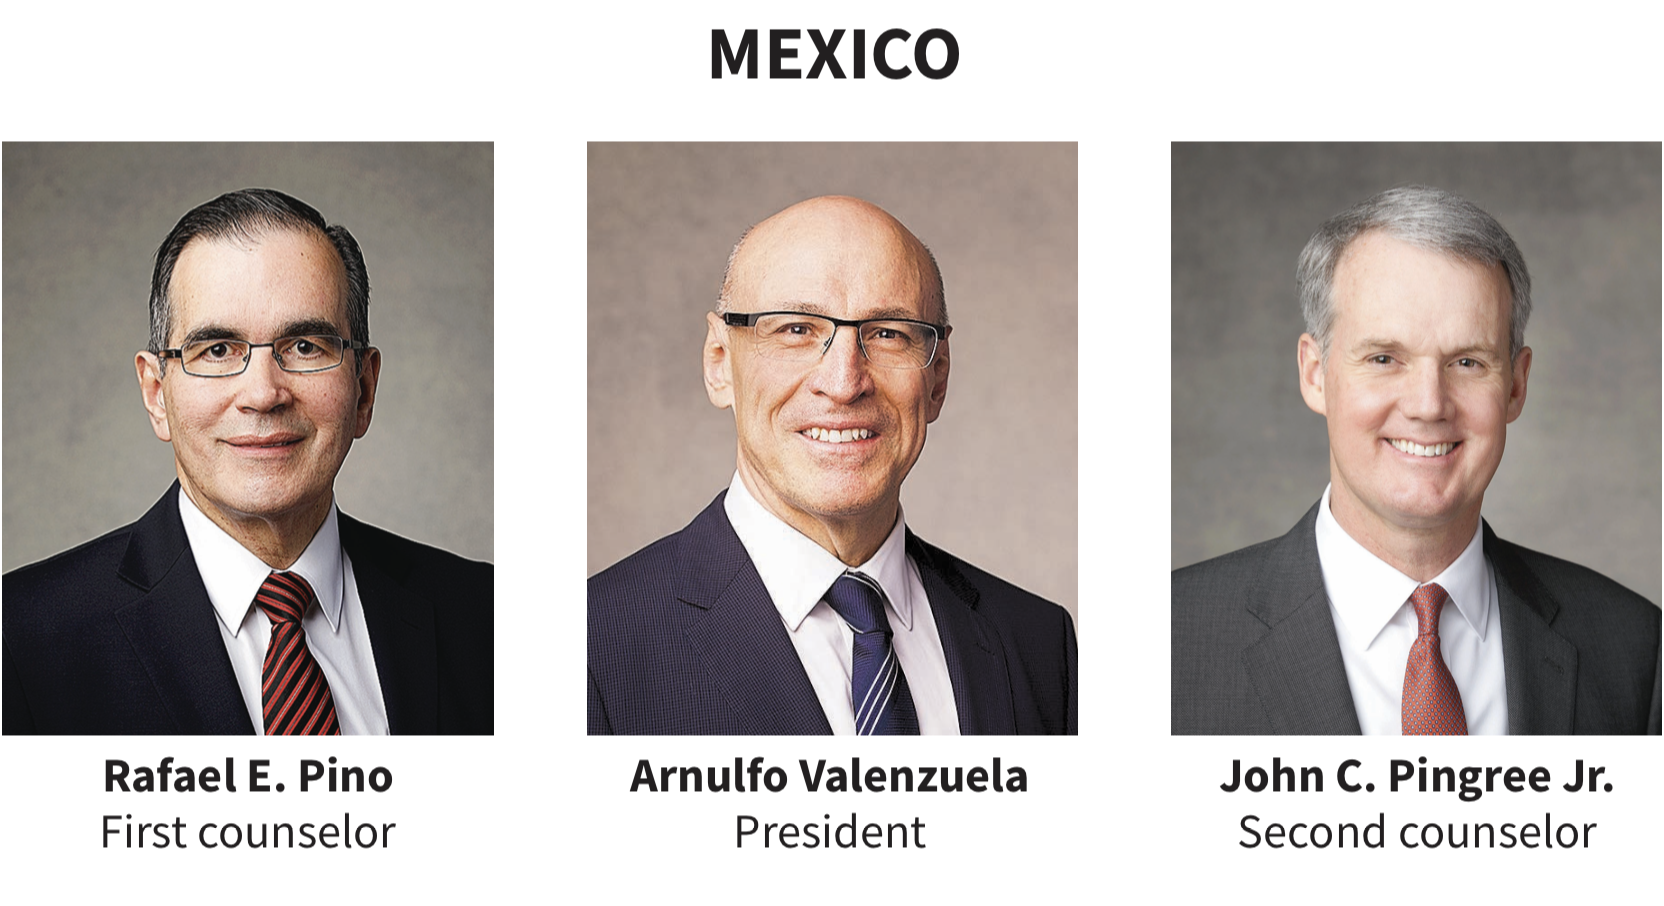 Mexico area presidency